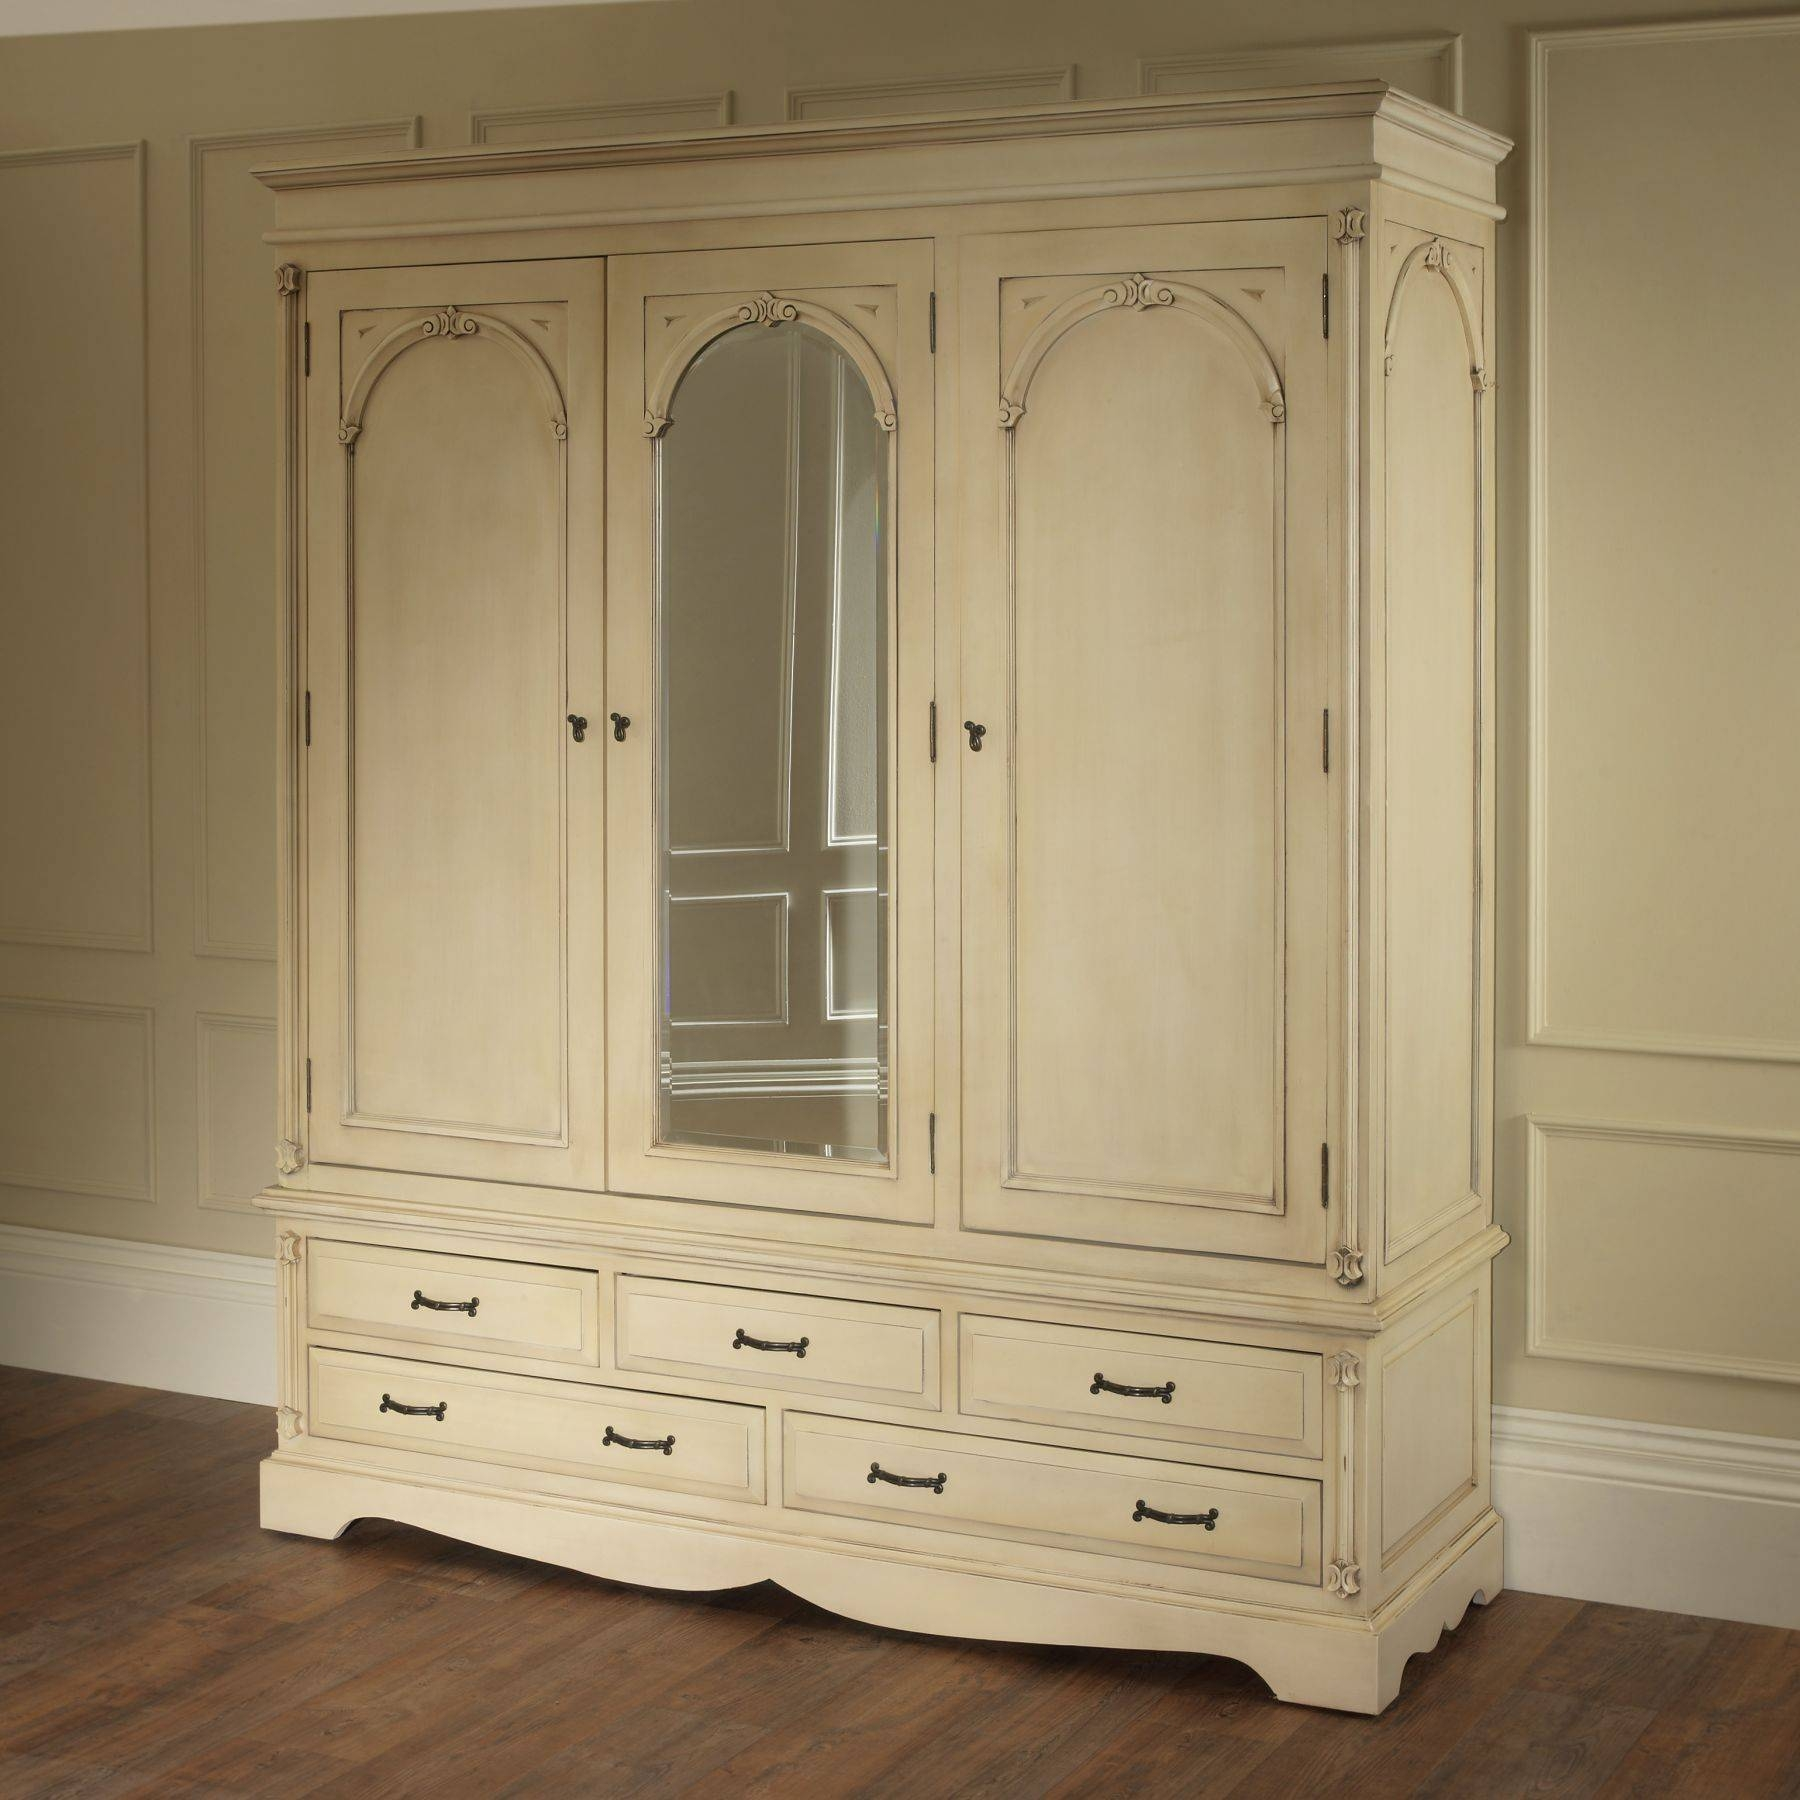 Bedroom Furniture : White Small Classic Armoire Wooden Vintage in White Vintage Wardrobes (Image 5 of 15)